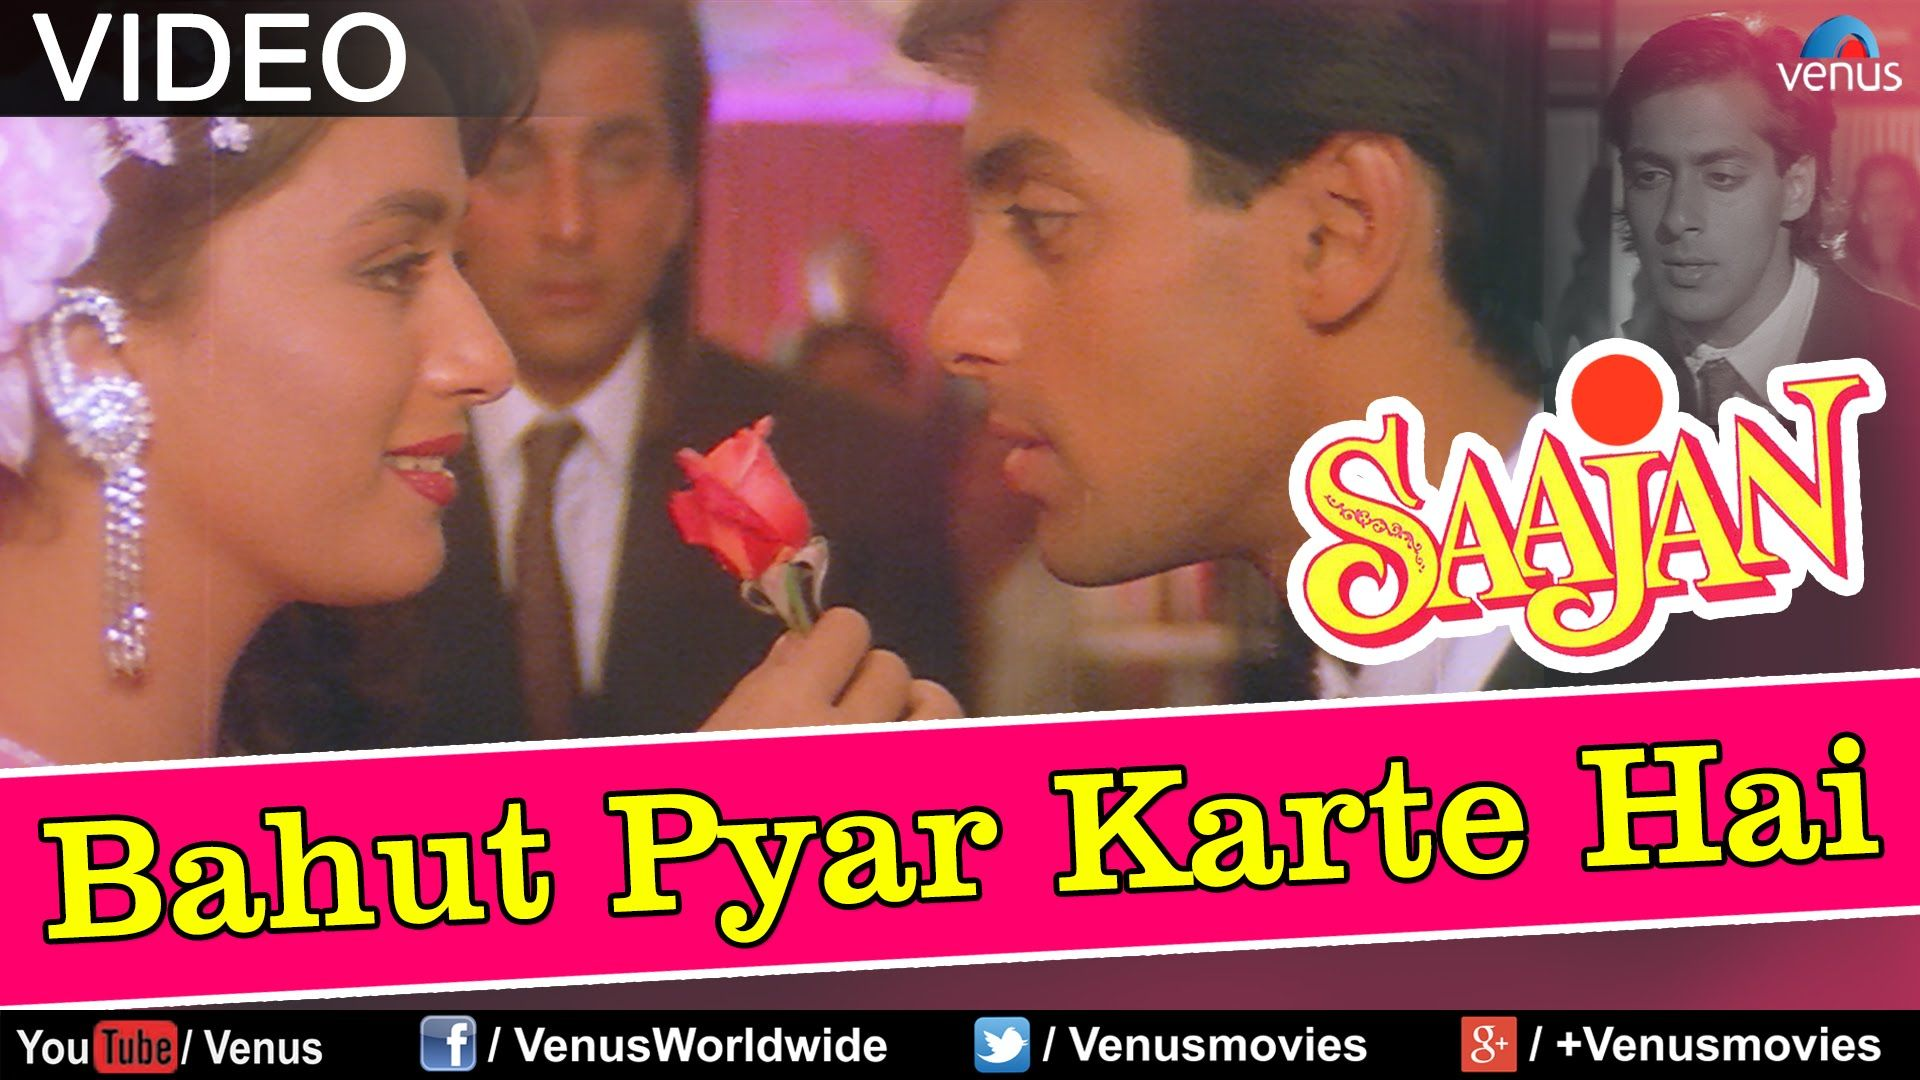 Bahut Pyar Karte Hain Male Full Video Song Saajan Salman Khan Madhuri Dixit Sanjay Dutt Youtube Lyrics Songs Male